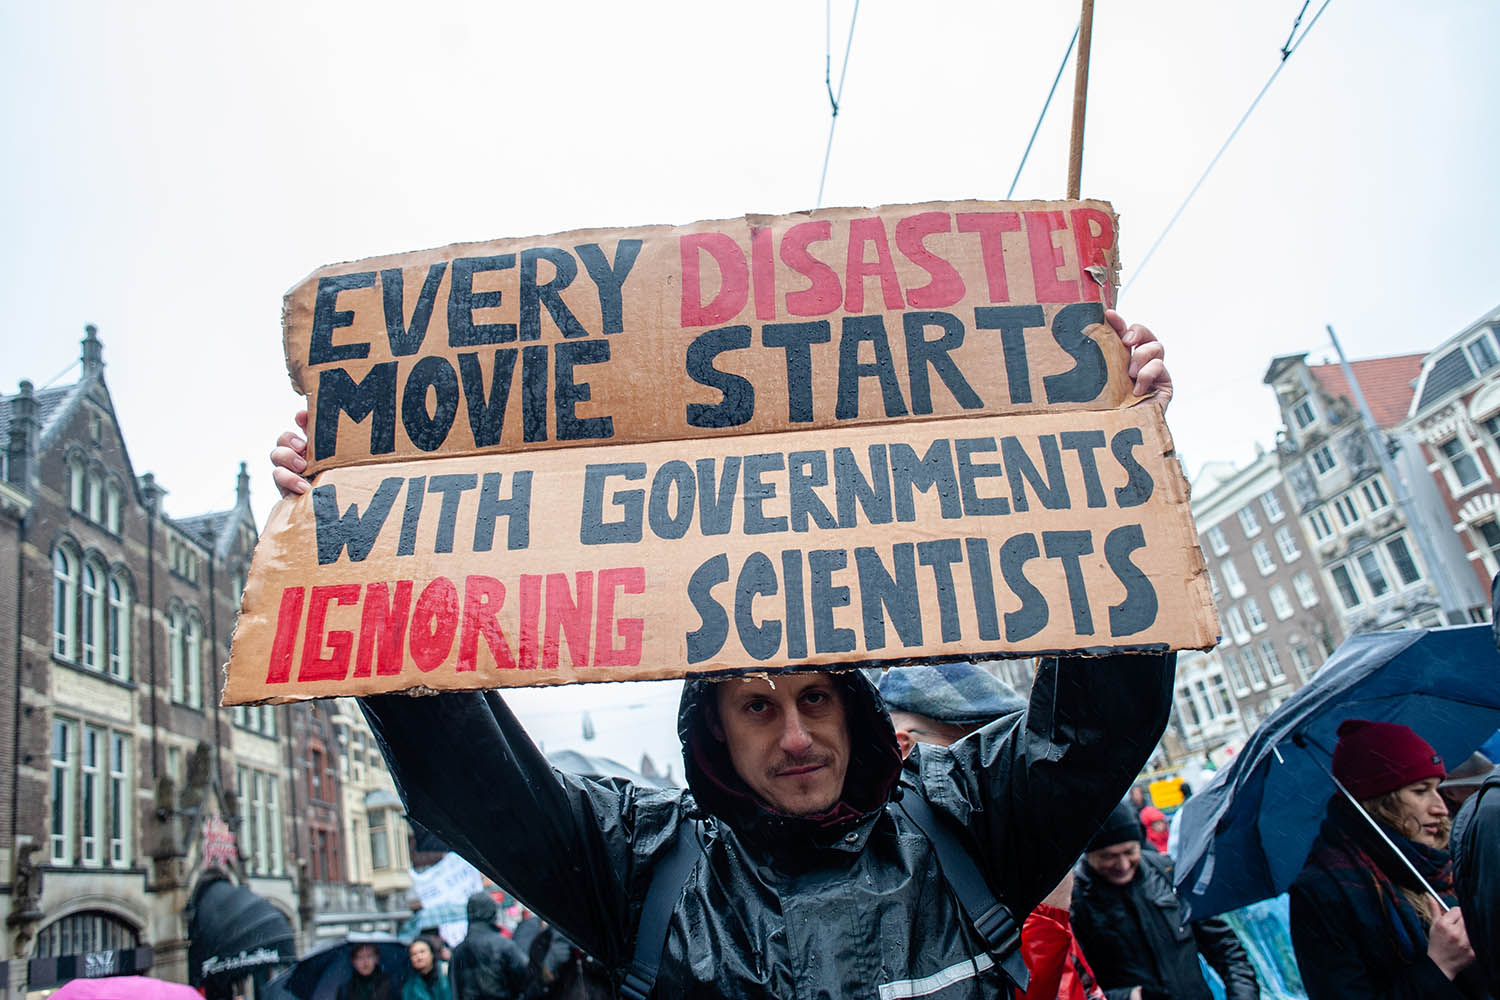 A demonstrator holds a sign during a climate strike in Amsterdam's Dam Square on March 10. Thousands of people gathered to demand affordable green energy.